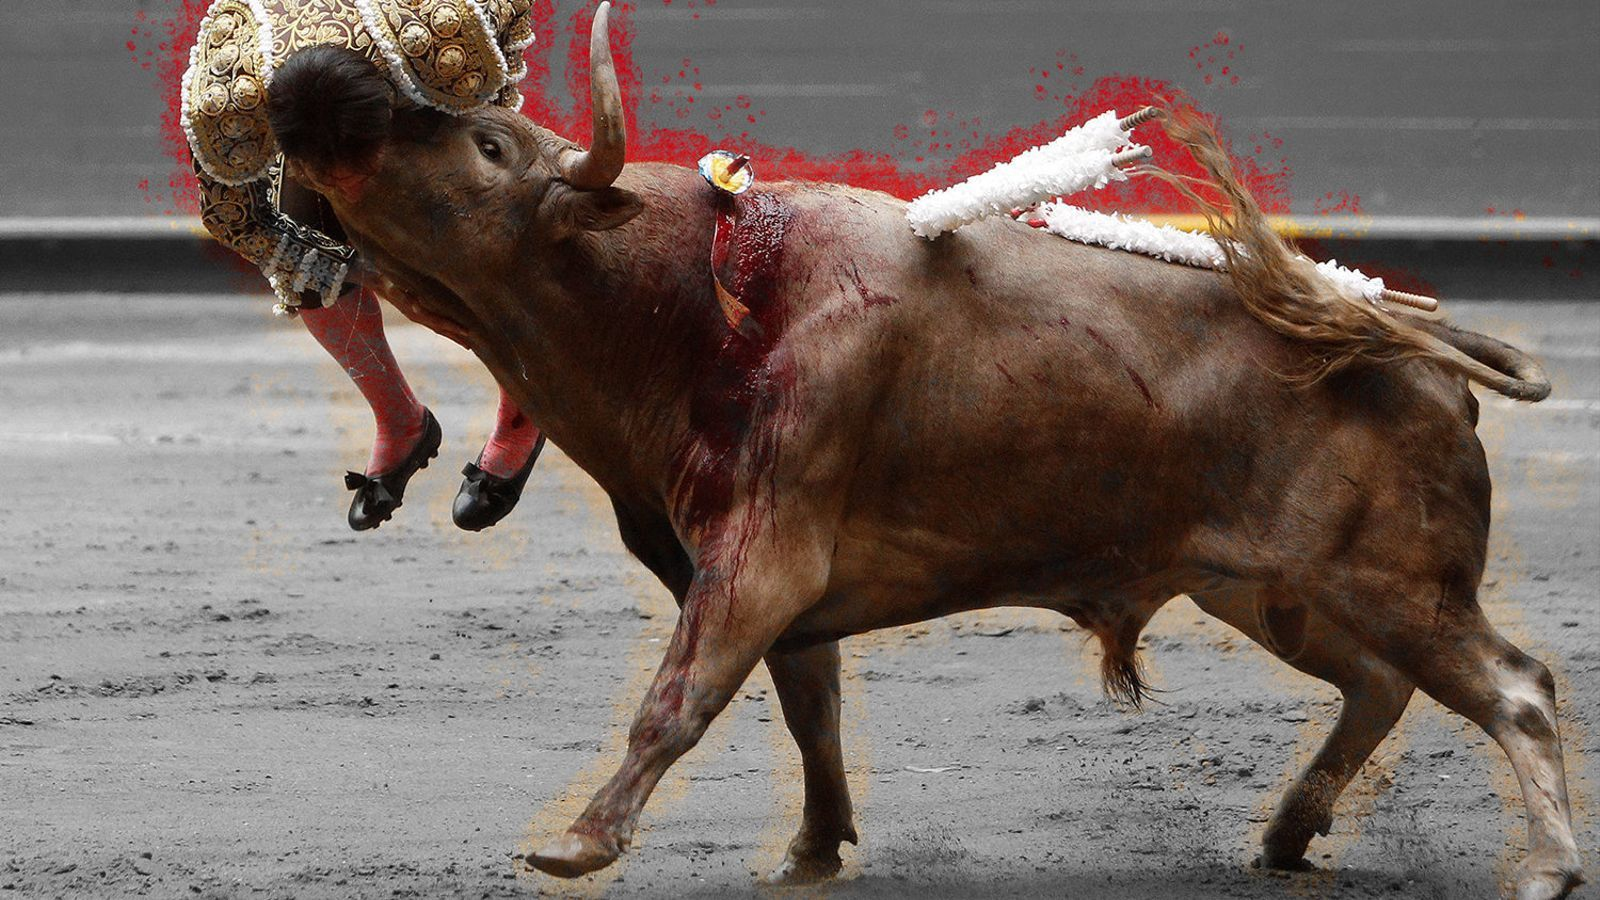 A favor dels toros  (dels animals, s'entén)